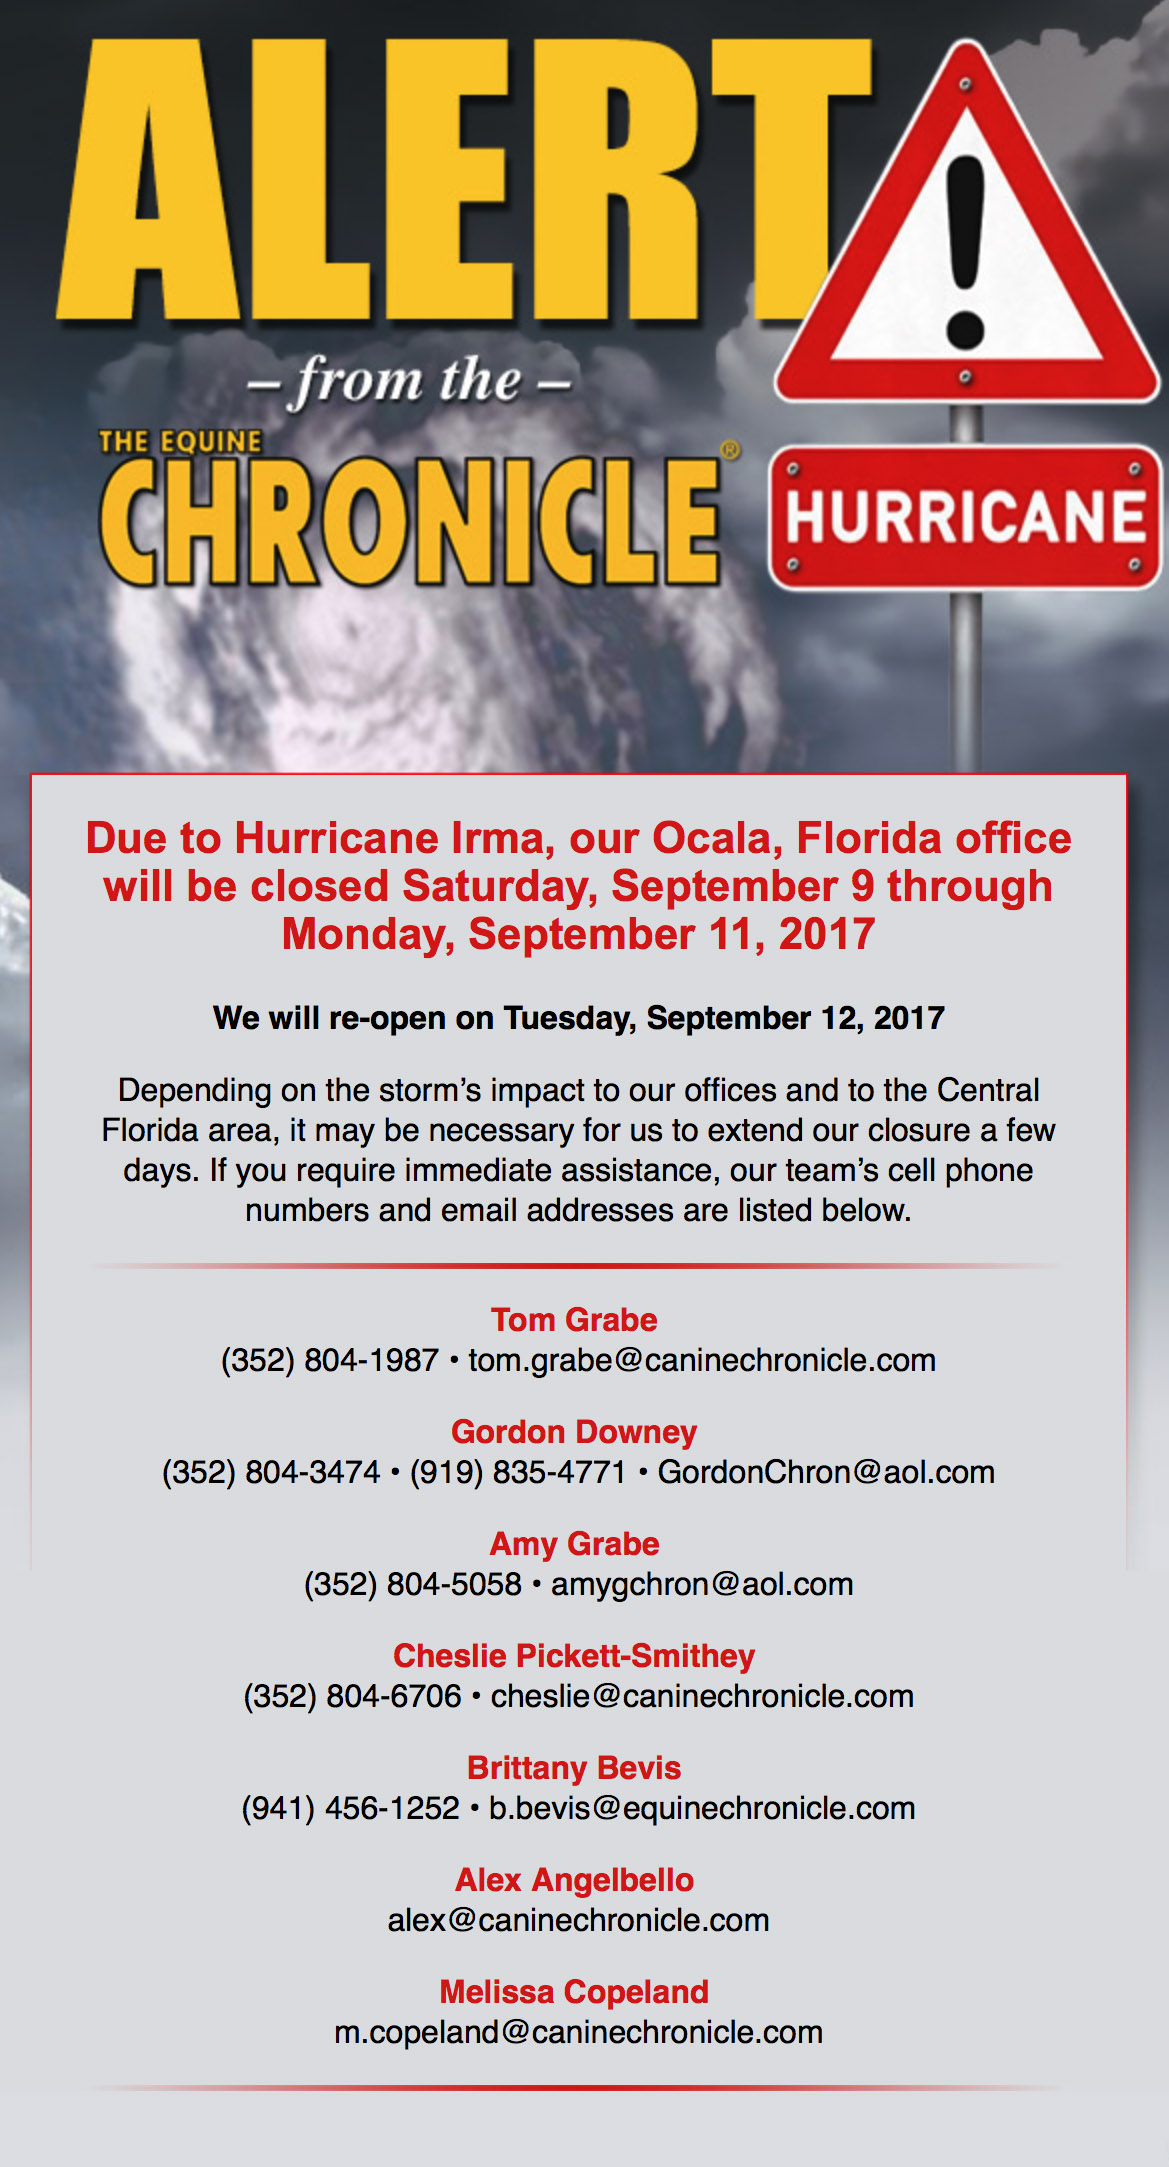 Due to Hurricane Irma, our Ocala, Florida office will be closed Saturday, September 9 and Monday, September 11, 2017.  We will re-open on Tuesday, September 12, 2017